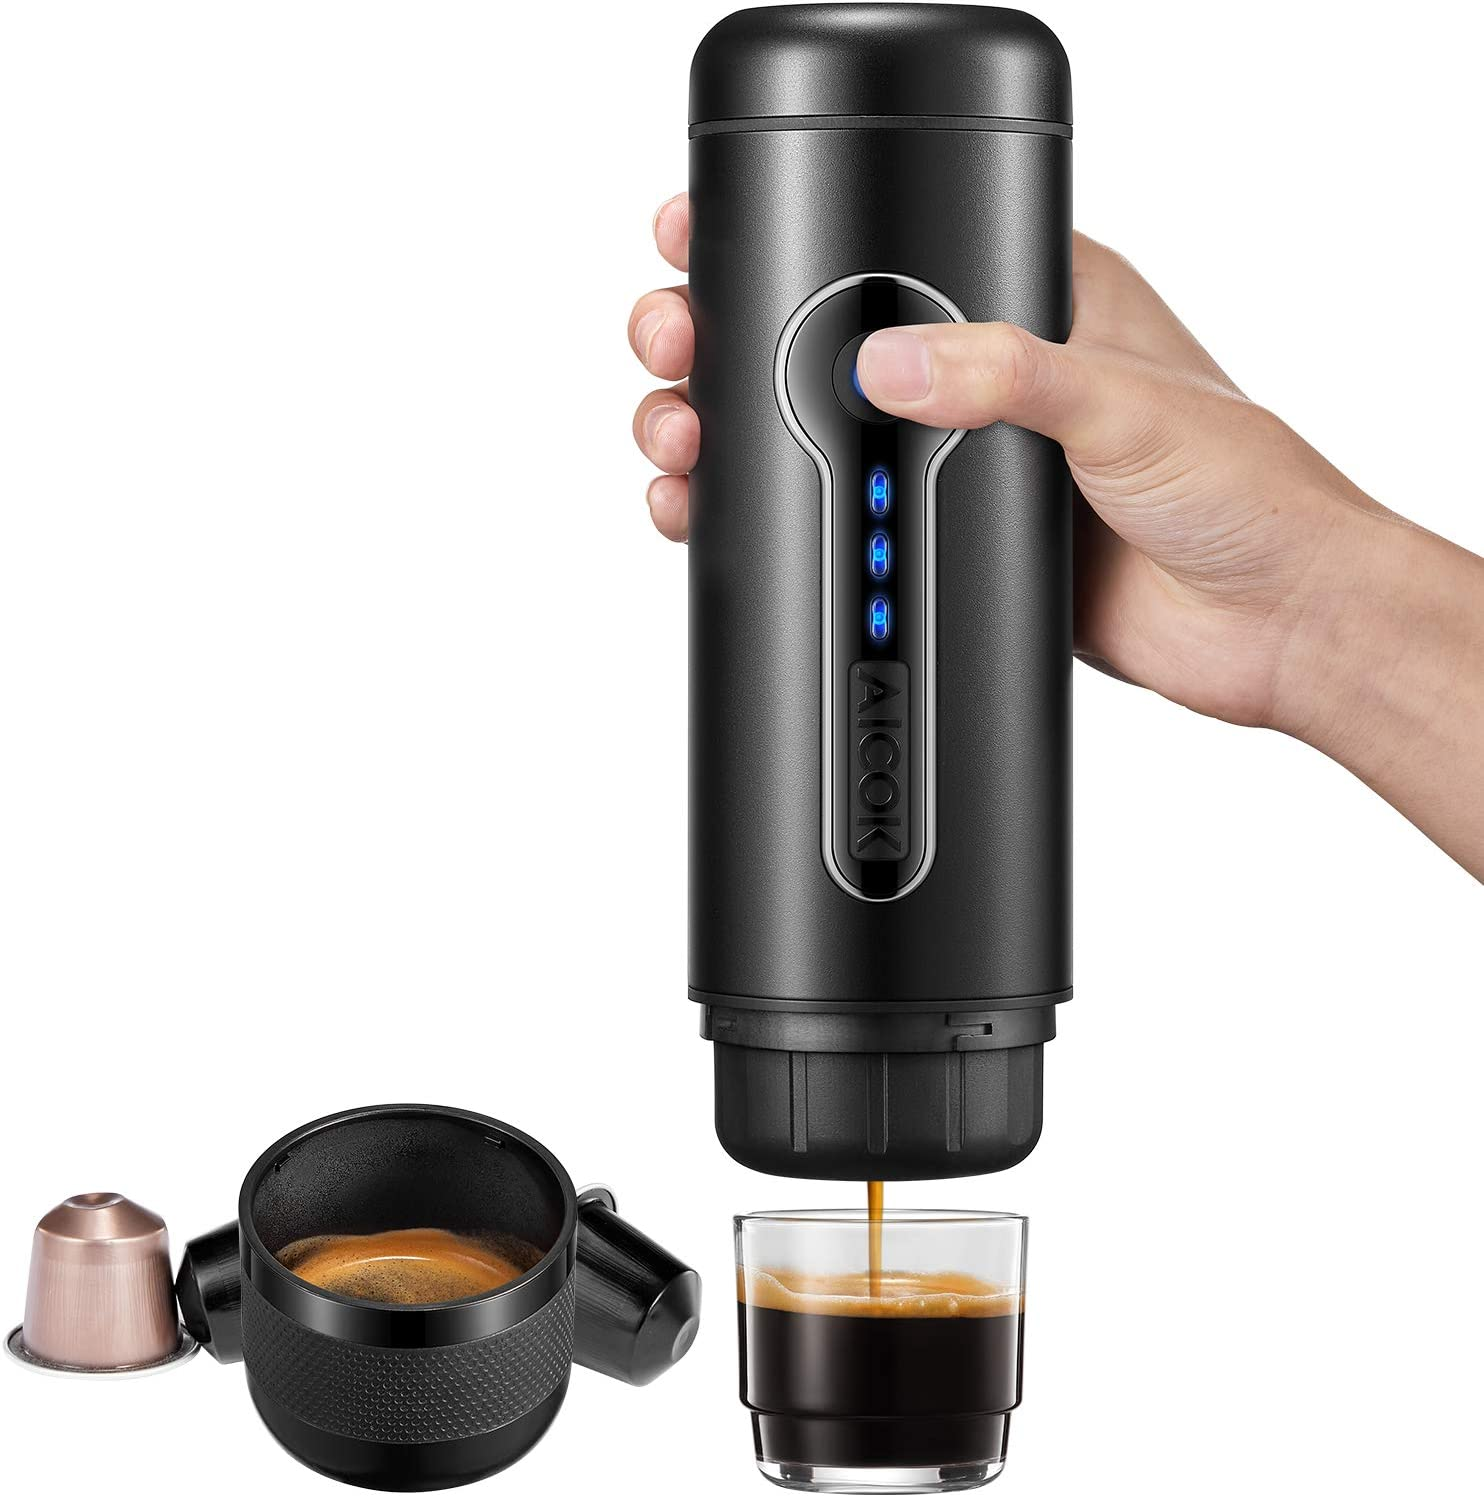 Aicok Portable Espresso Machine, 18 Bar Travel Coffee Maker, Electric Mini Espresso Maker wih Heating Function, One Touch Operation, Self-Cleaning, BPA-Free, Perfect for Camping, Travel and Office